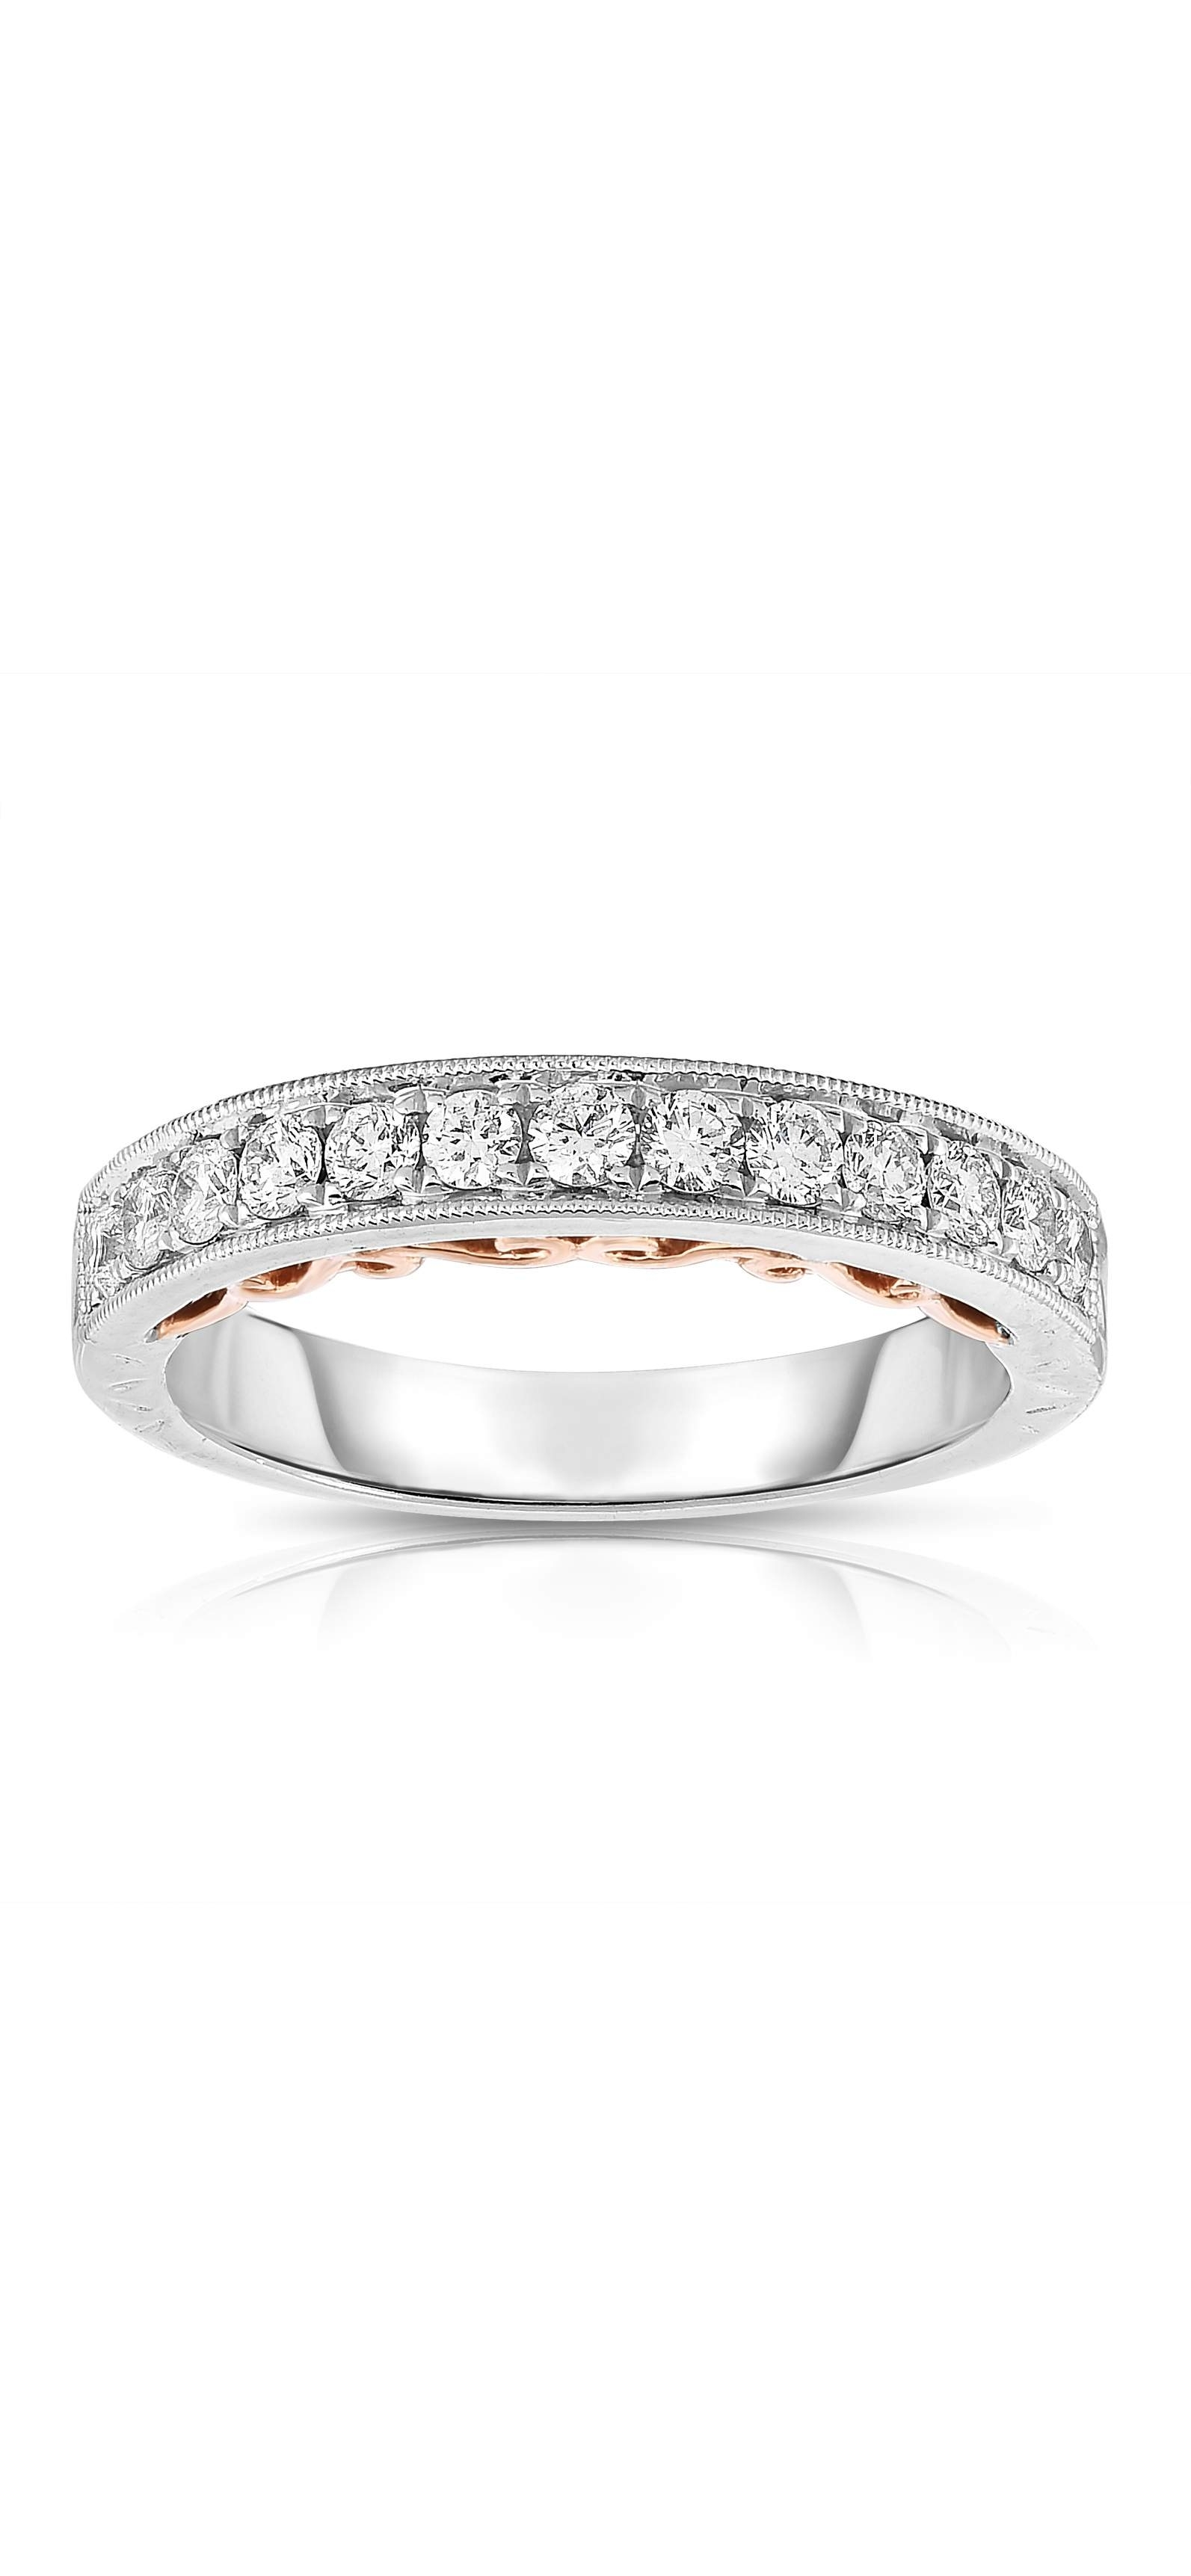 Diamond Engagement Ring Collection In Partnership With Zales Outlet Throughout 2018 Diamond Vintage Style Contour Wedding Bands In 14k White Gold (View 2 of 15)